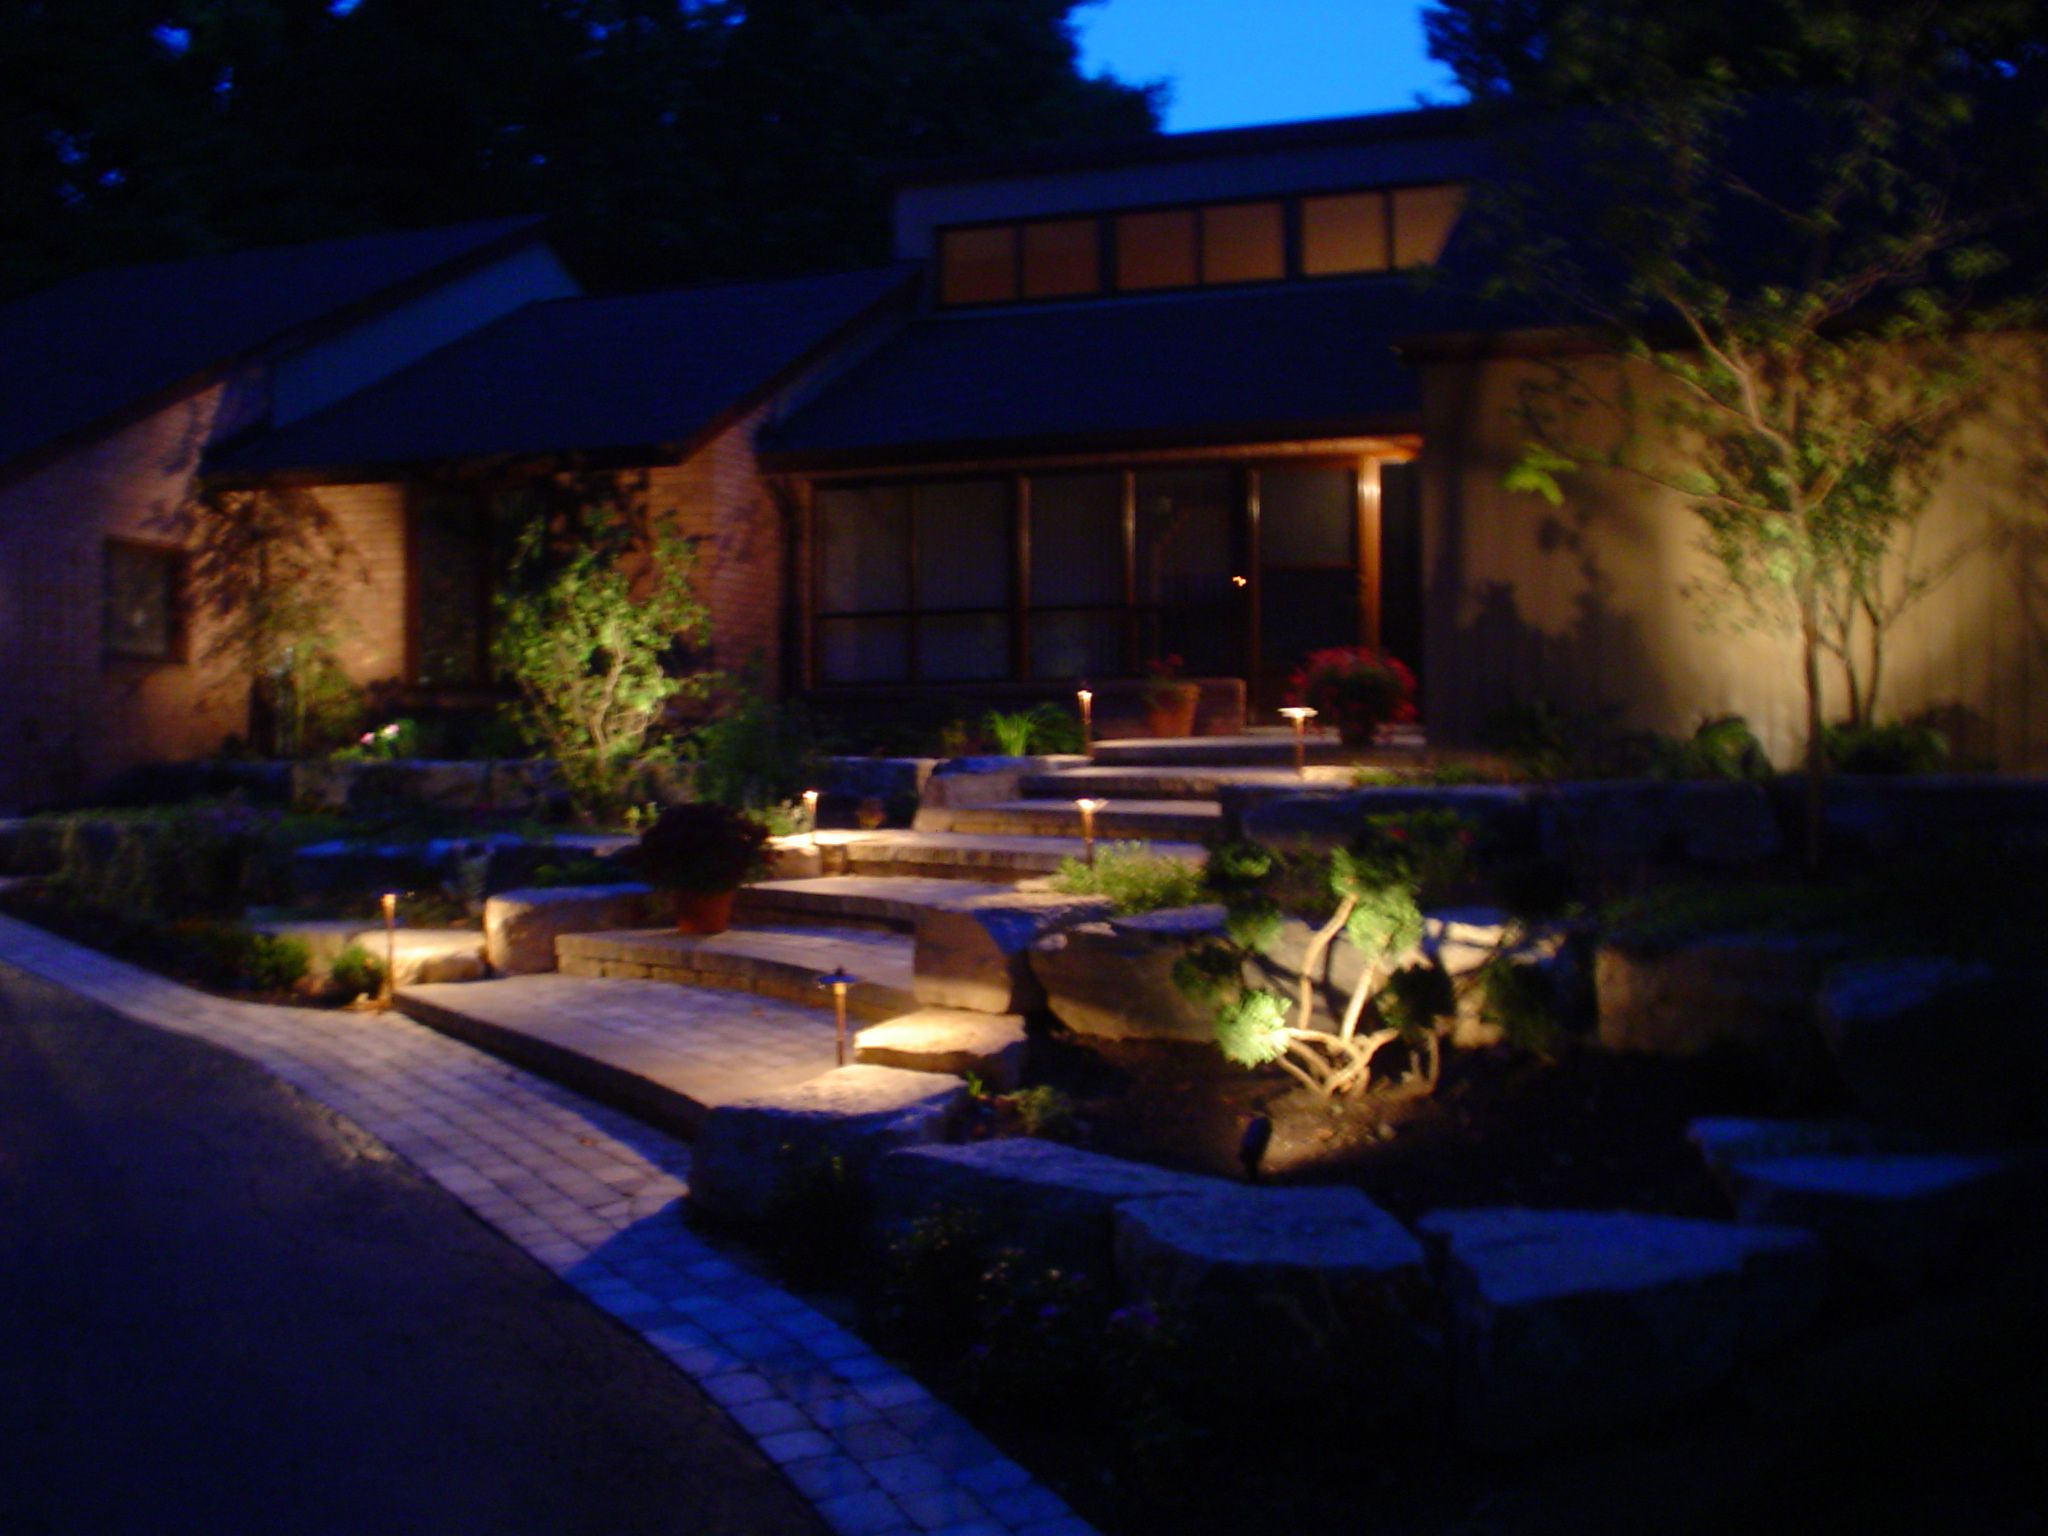 antique landscape lighting designs we need backyard lighting - Landscape Lighting Design Ideas